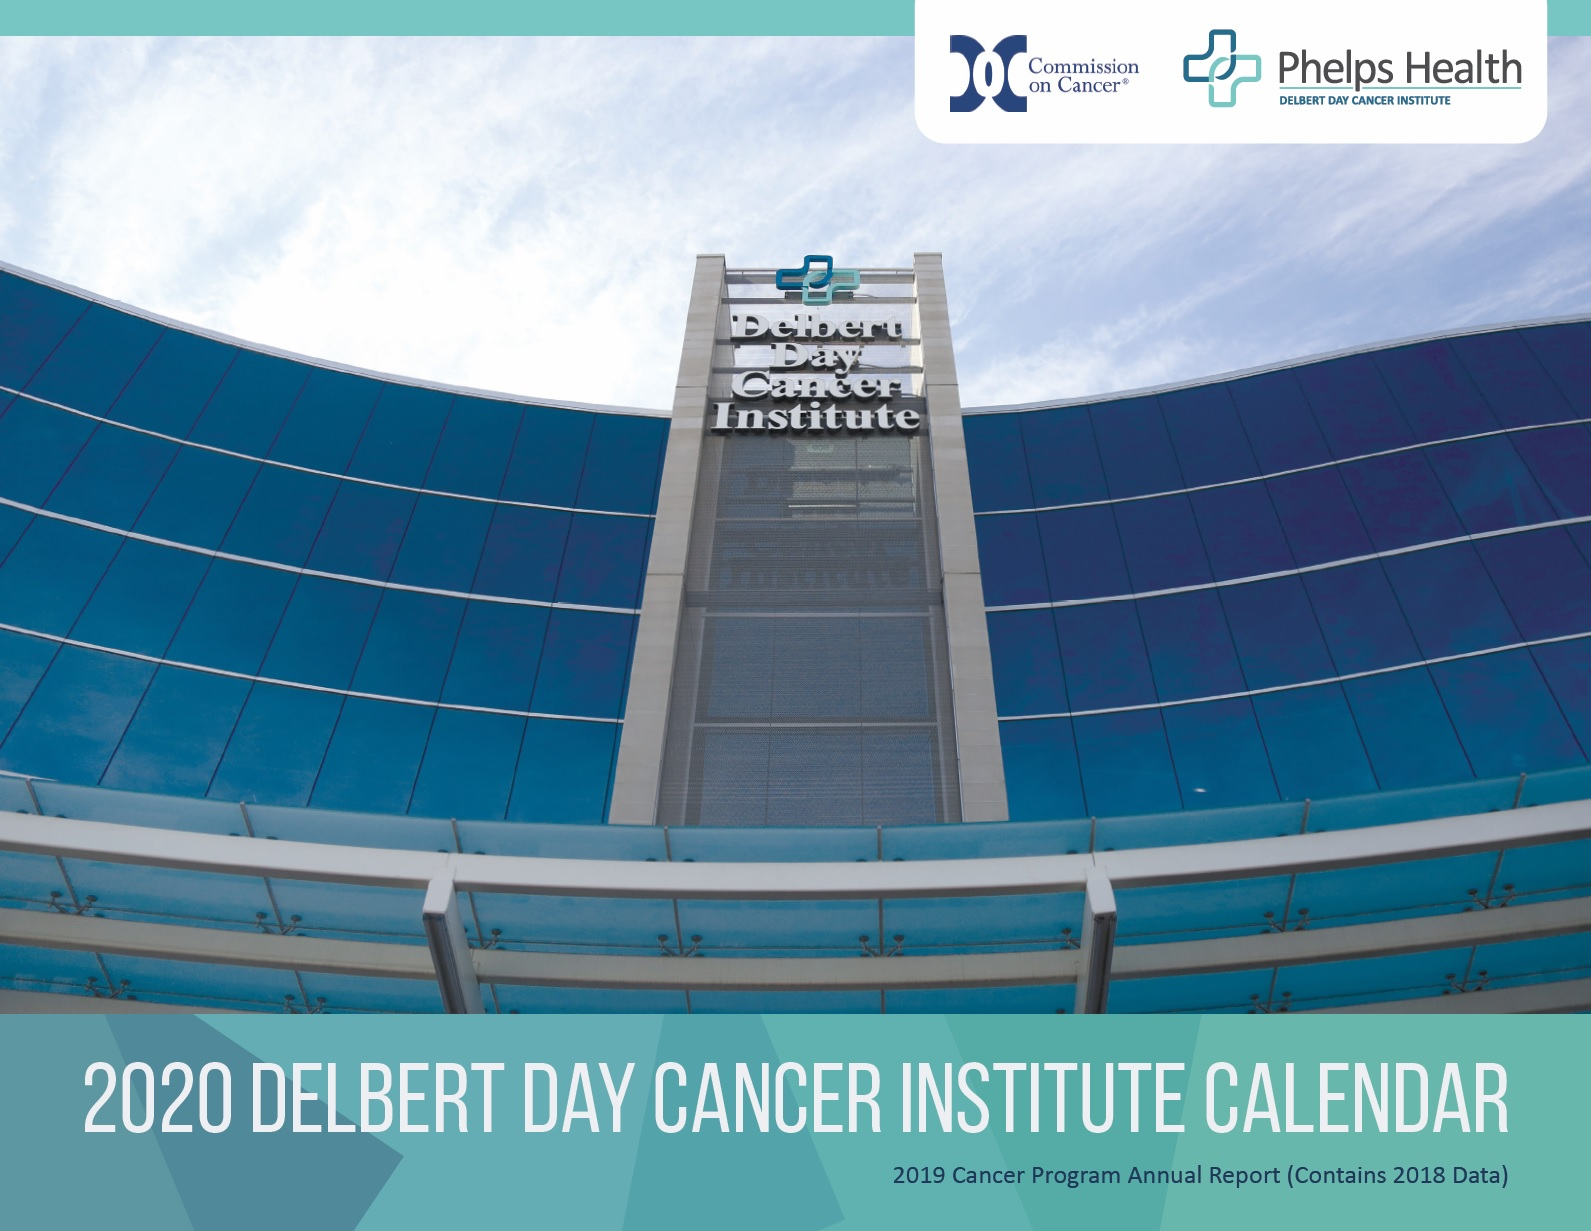 DDCI annual cancer report calendar